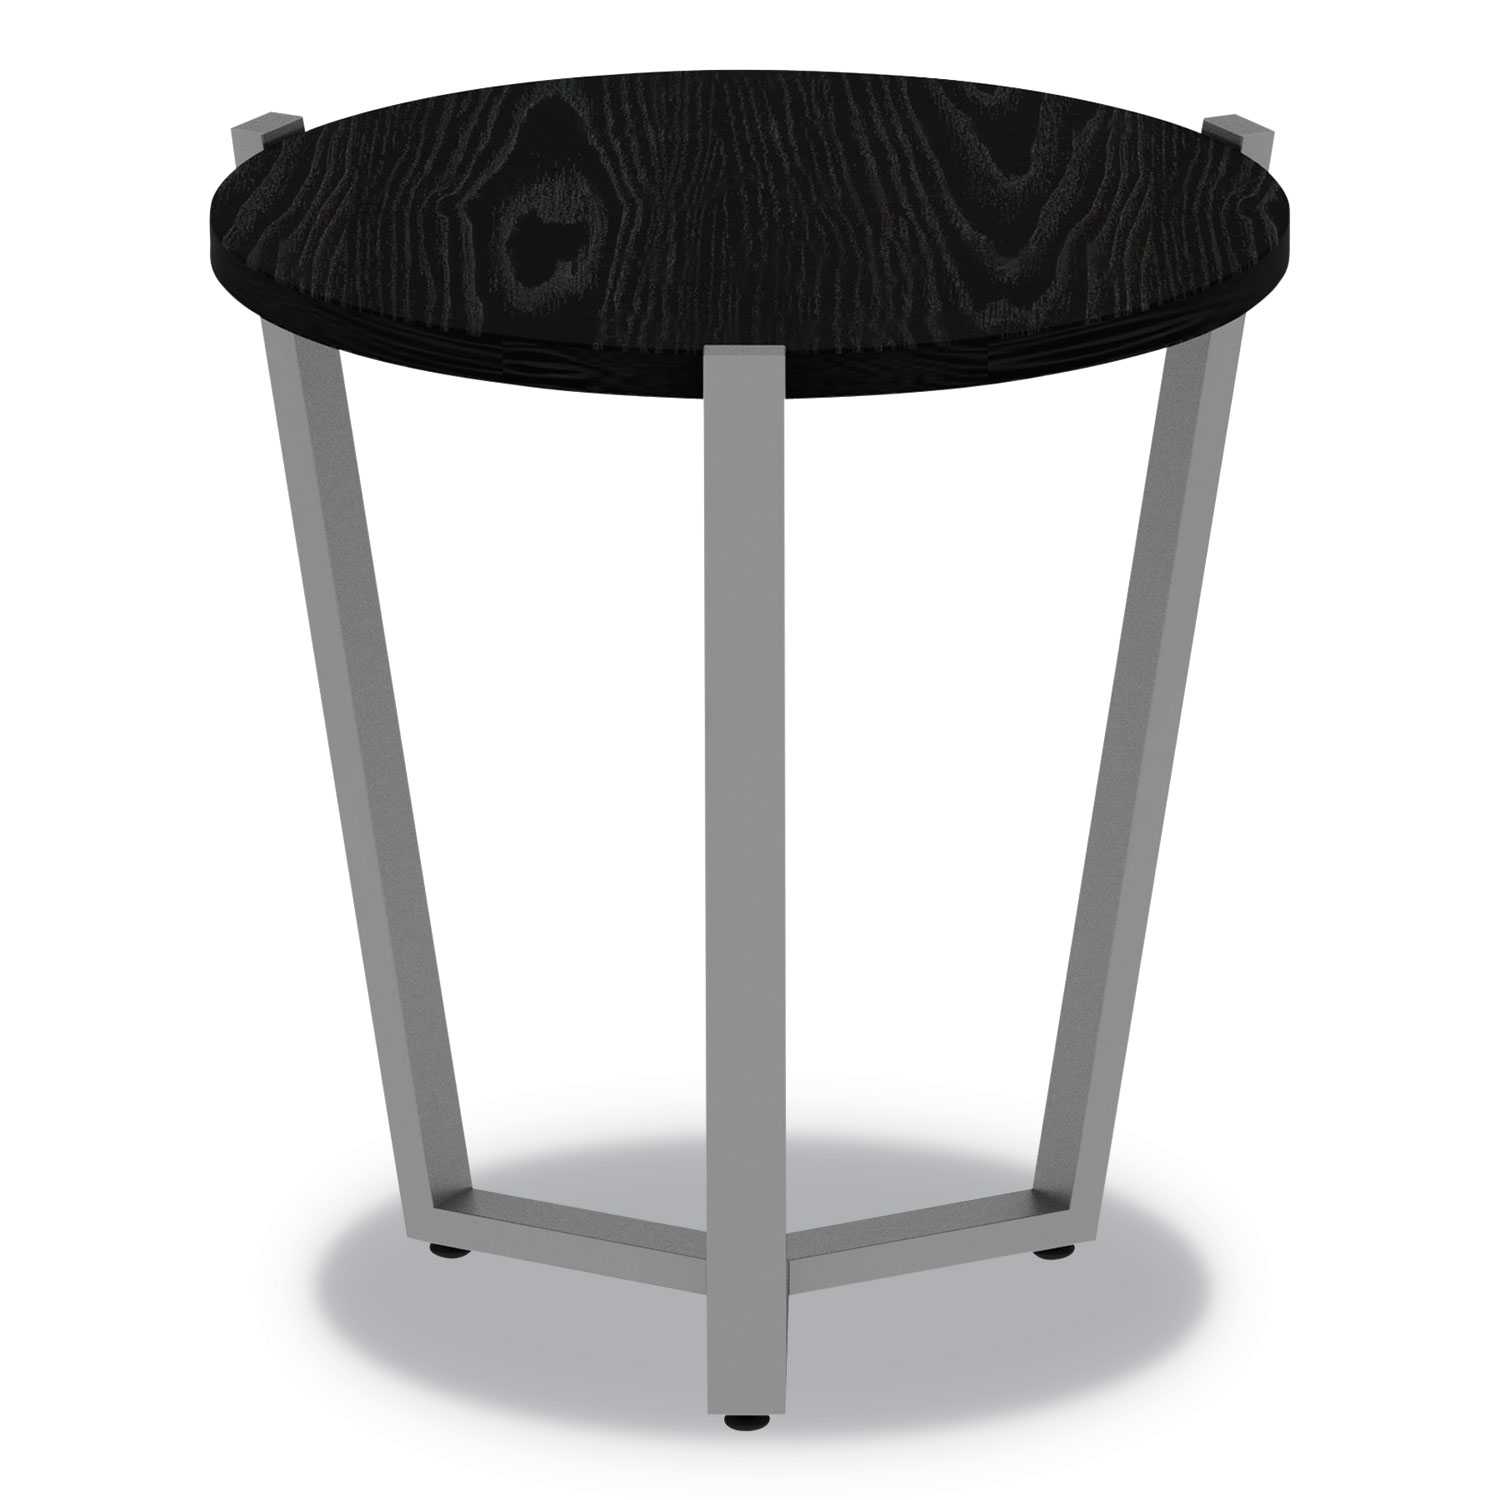 Beau Round Occasional Corner Table, 21 1/4 Dia X 22 3/4h, Black/Silver